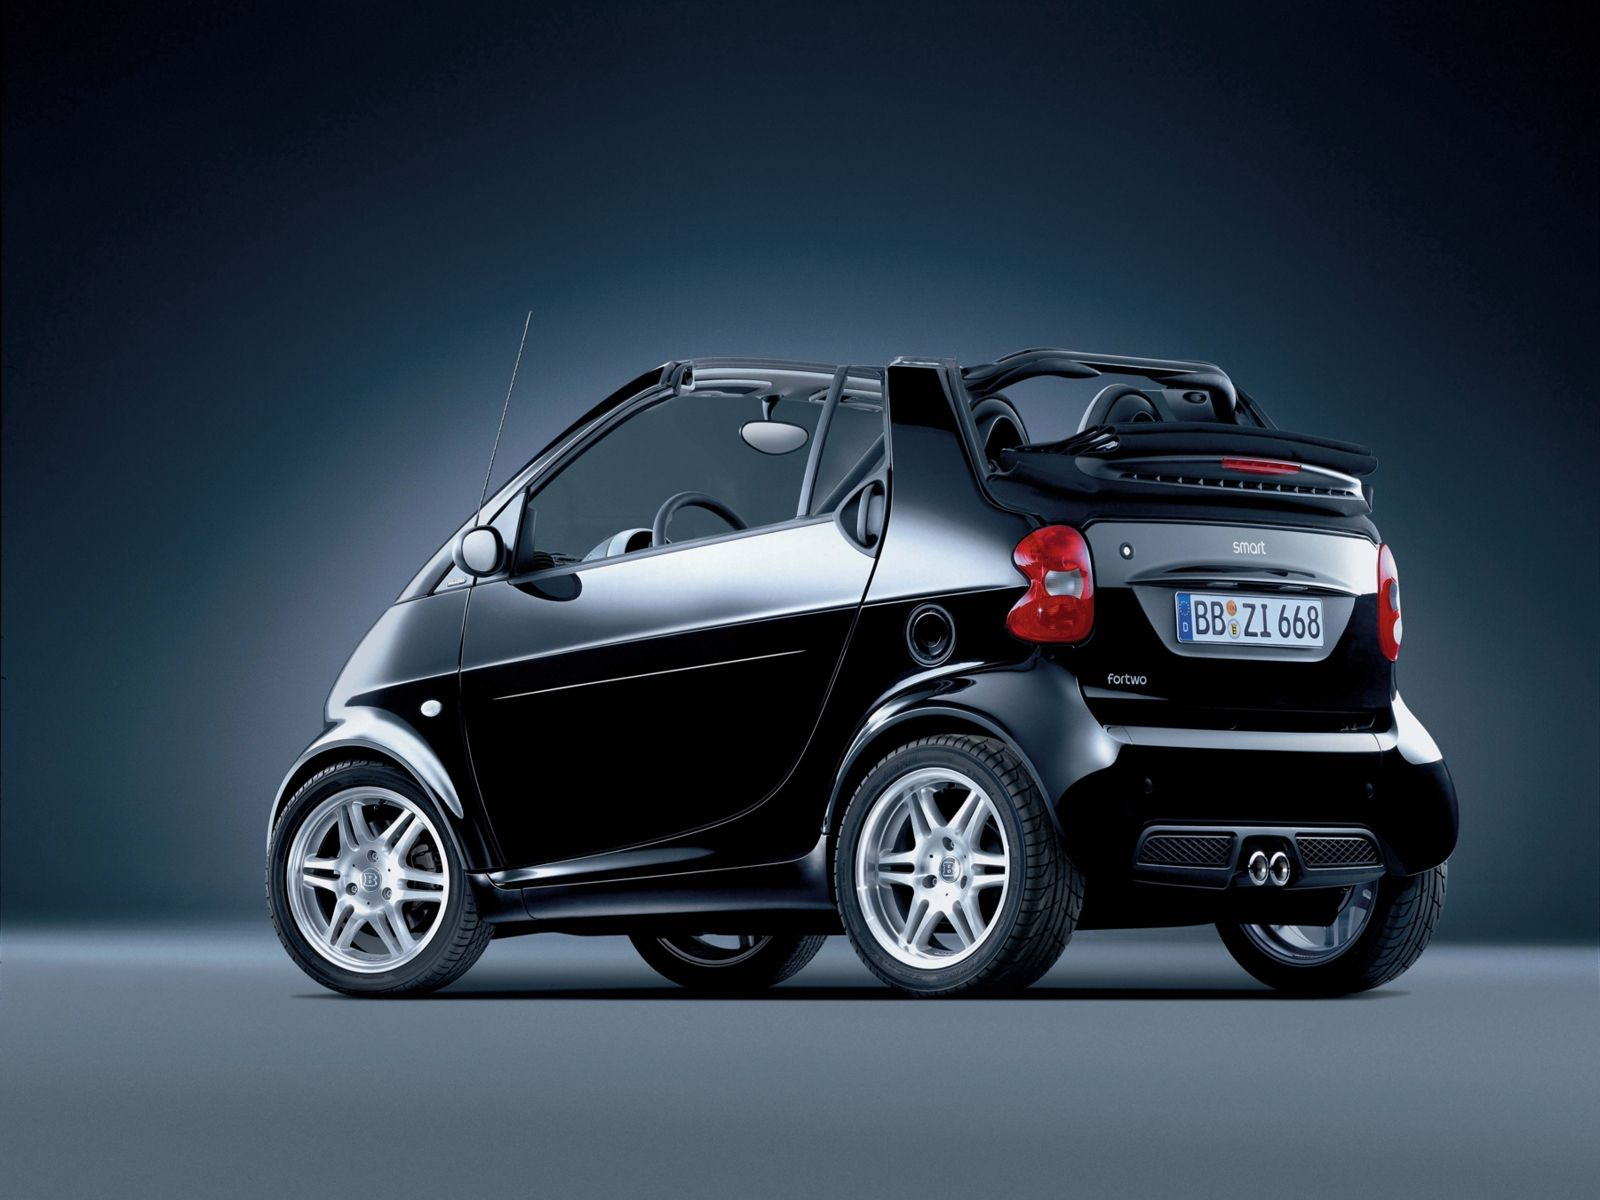 Cabriolet smart for two pure back side view